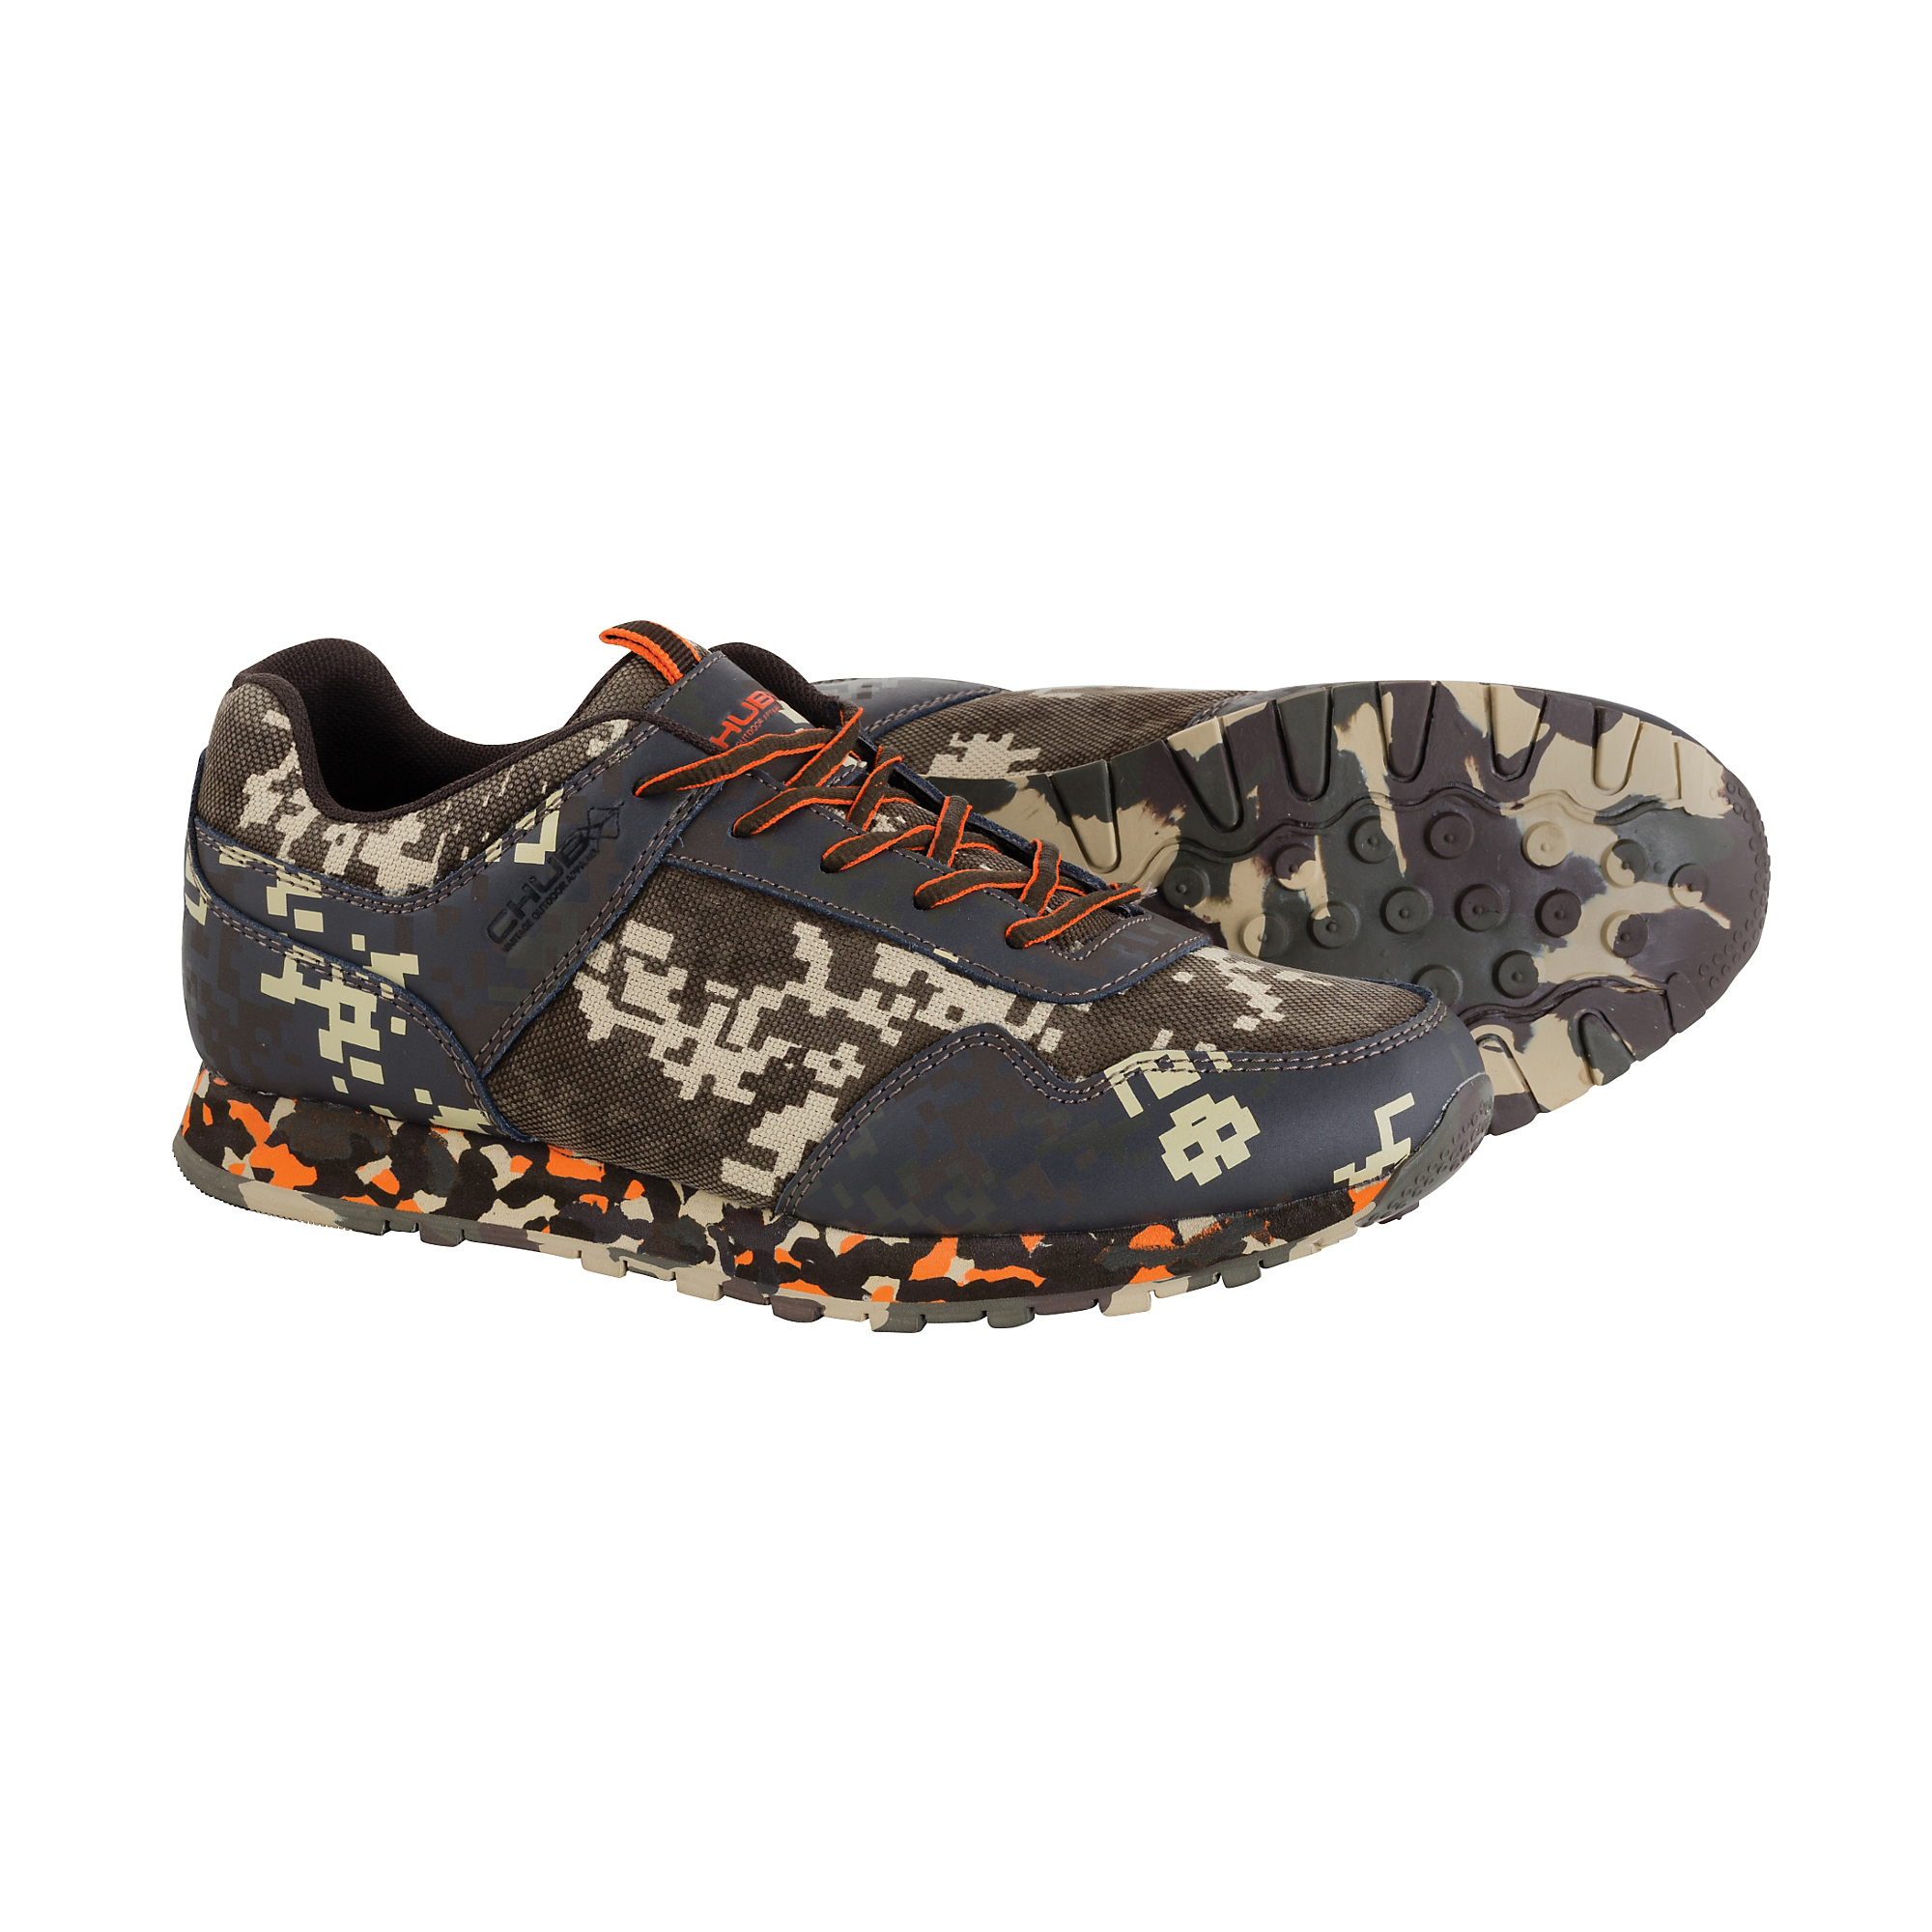 98852184a6d90 Chub Vantage Camo Trainers – Glasgow Angling Centre